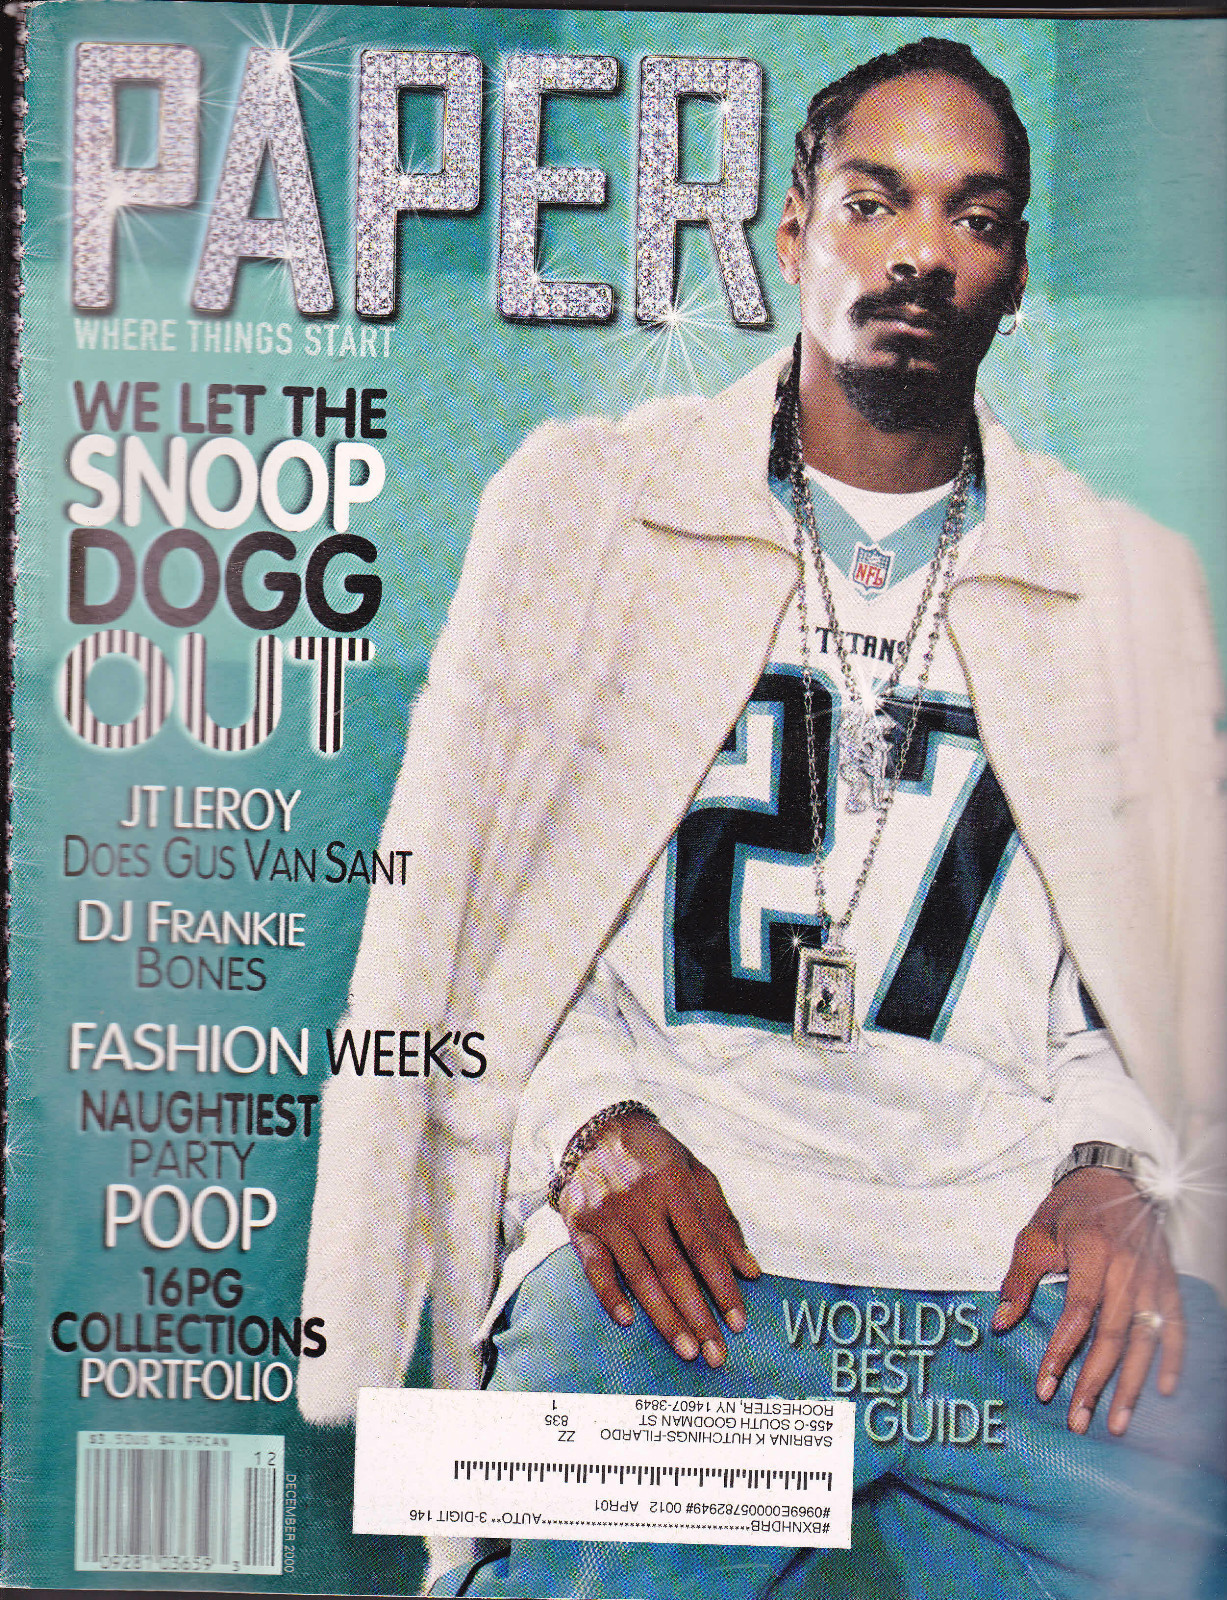 westcoastchris :     Snoop Dogg, Paper, December 2000       http://hiphopsmithsonian.com/snoop-dogg